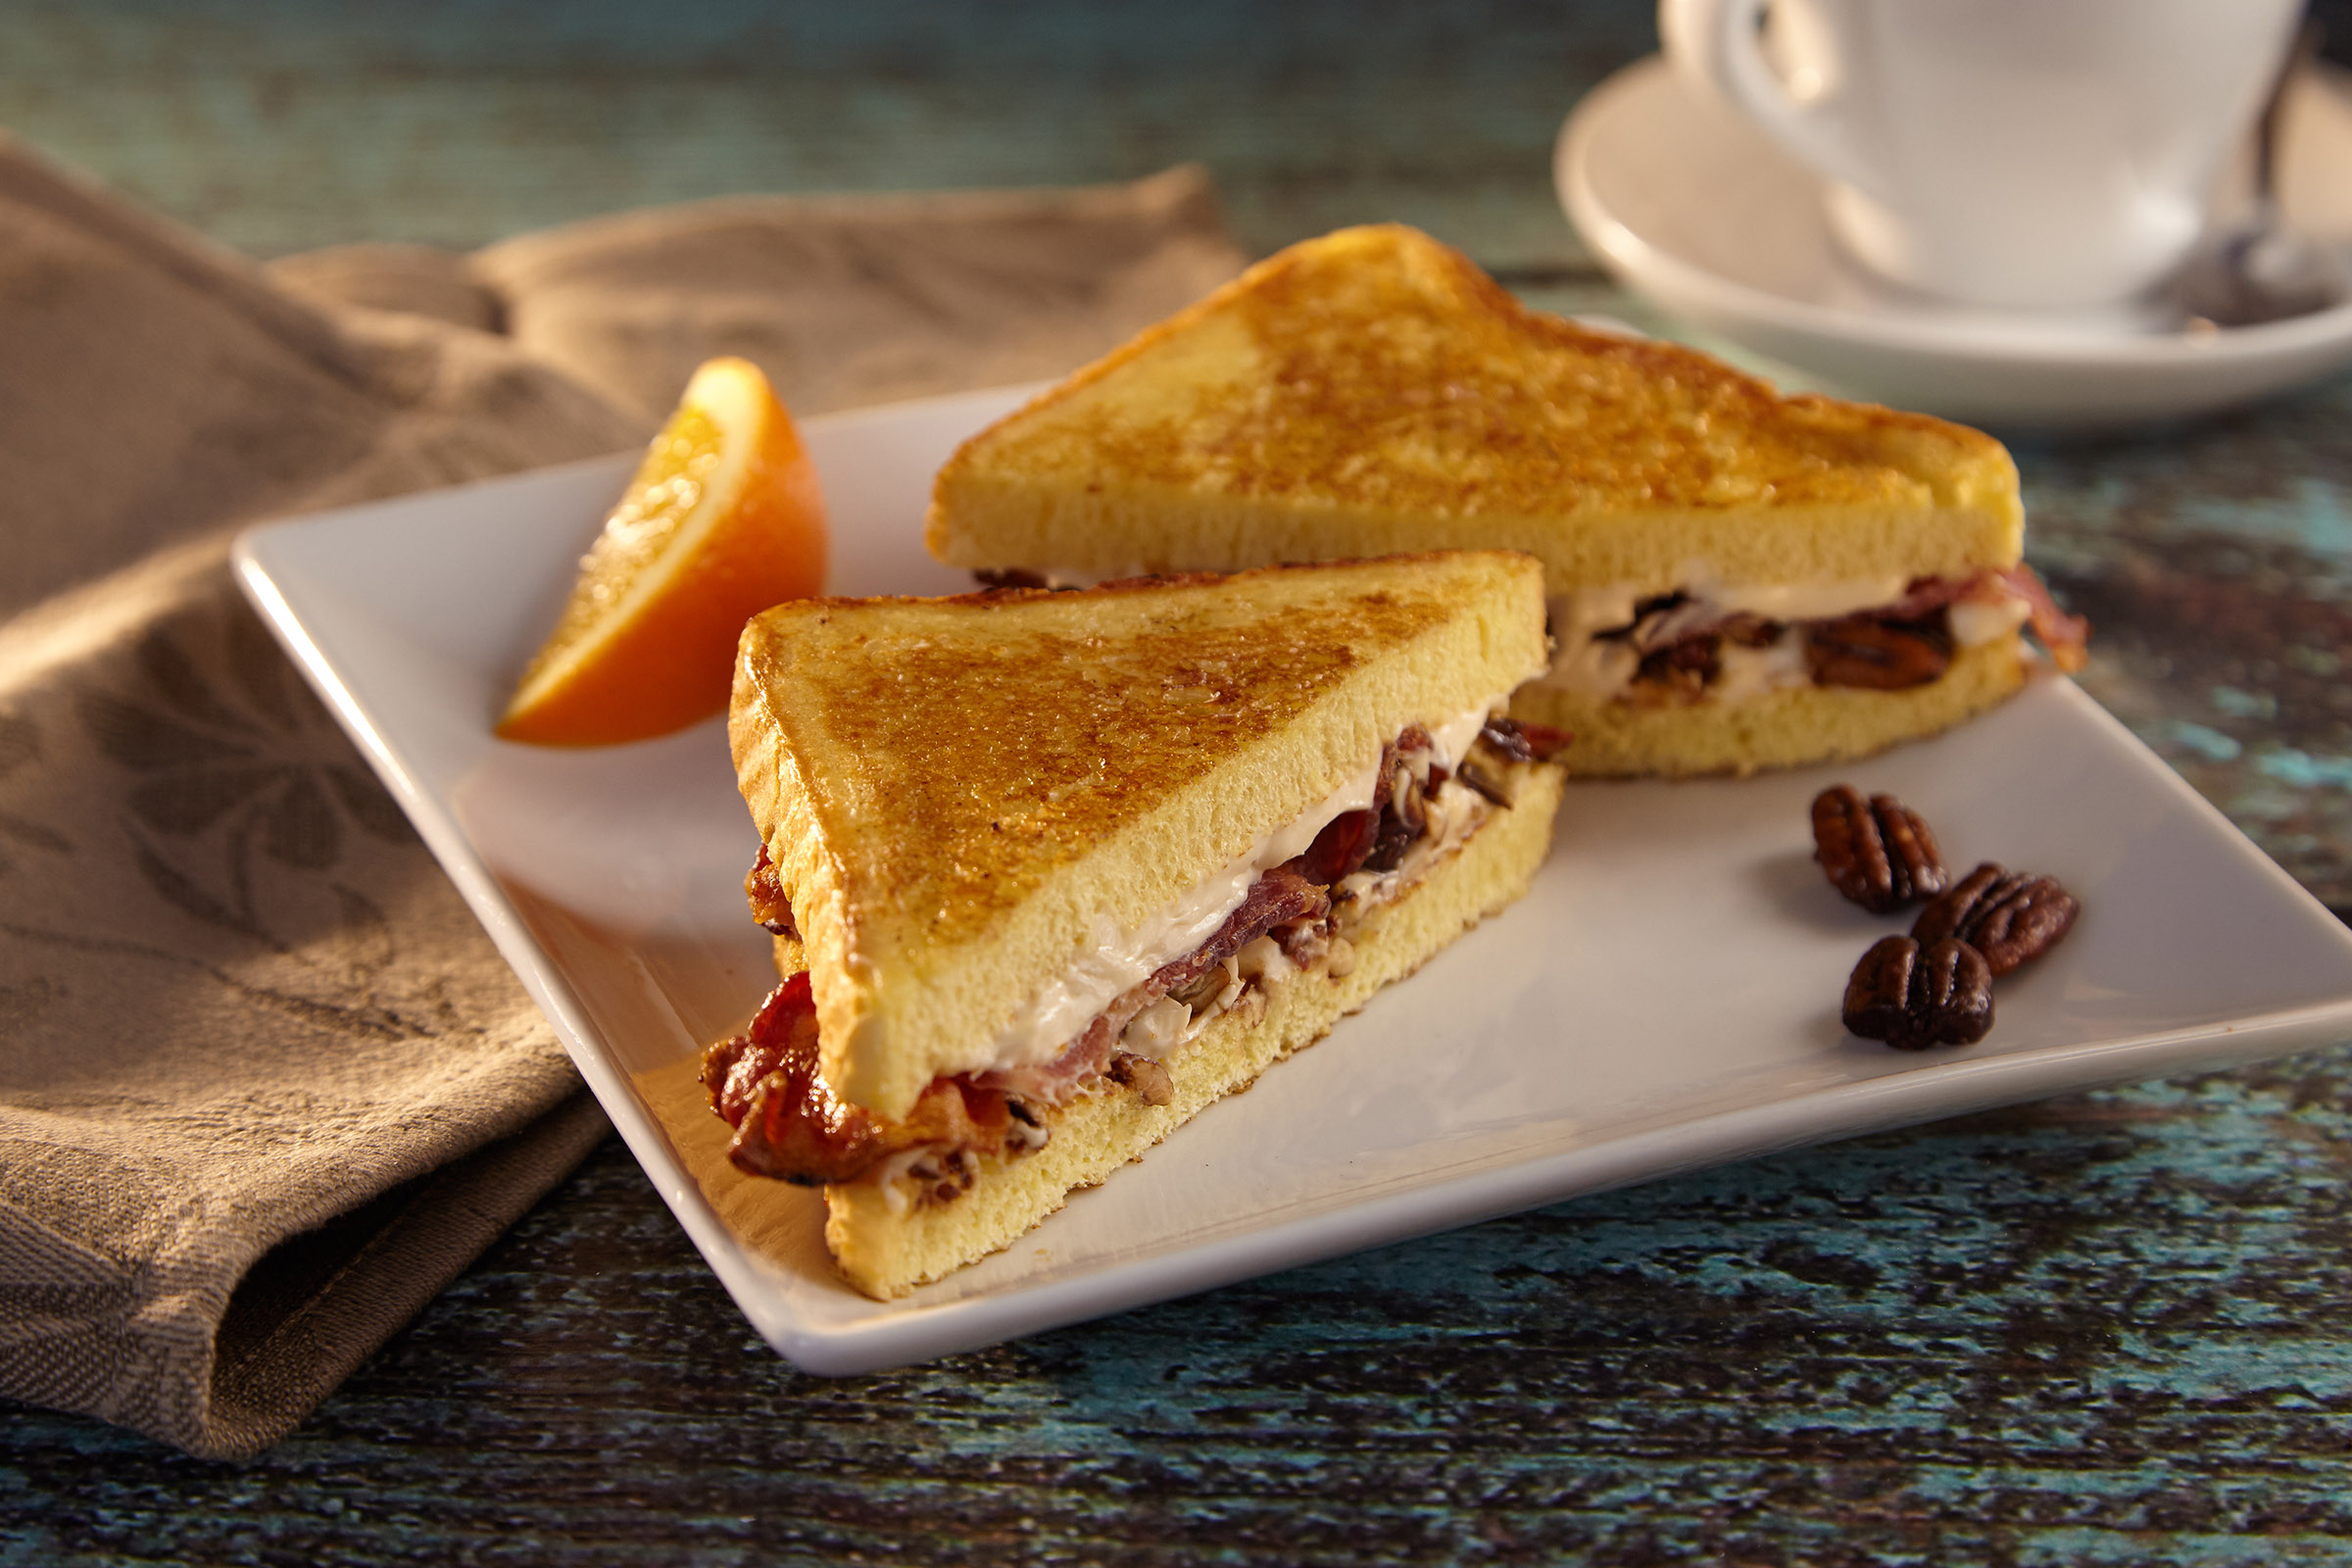 SWEET 'N' SMOKY FRENCH TOAST SANDWICH